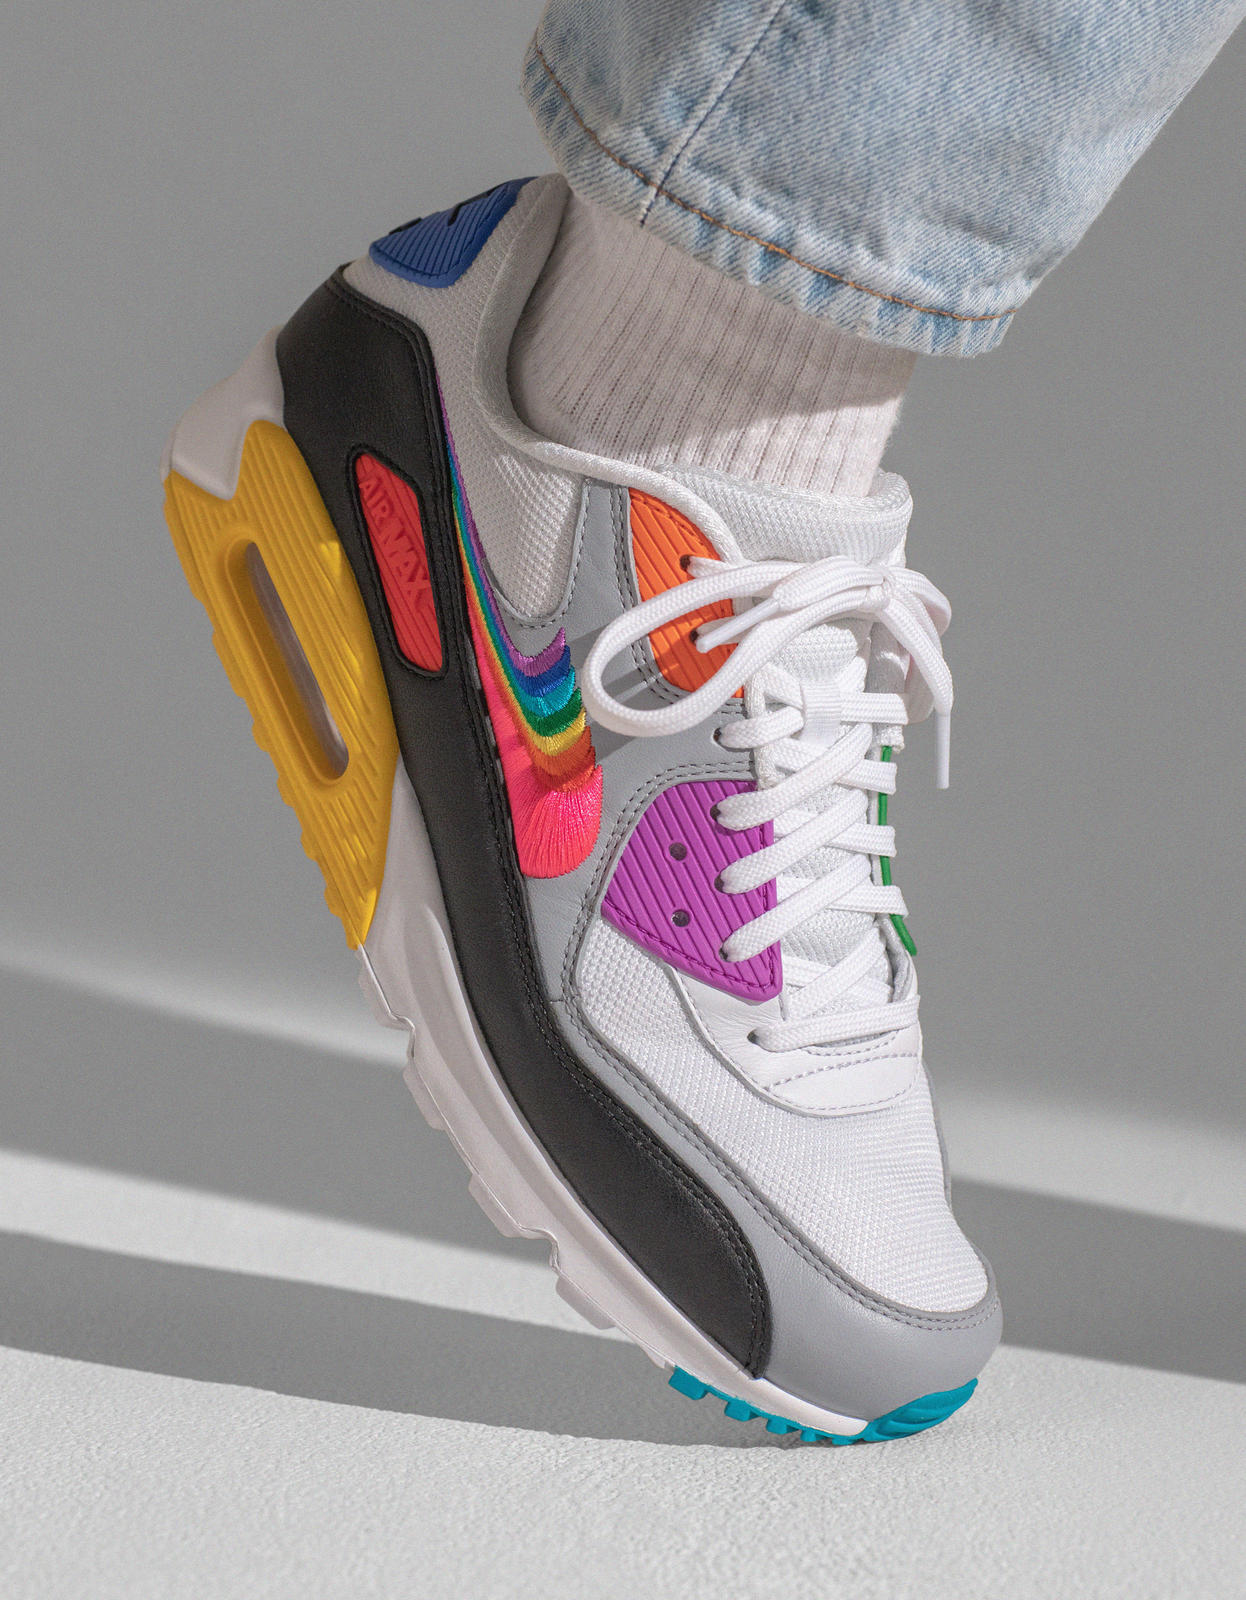 Nike-BETRUE-2019-Collection-18_88117